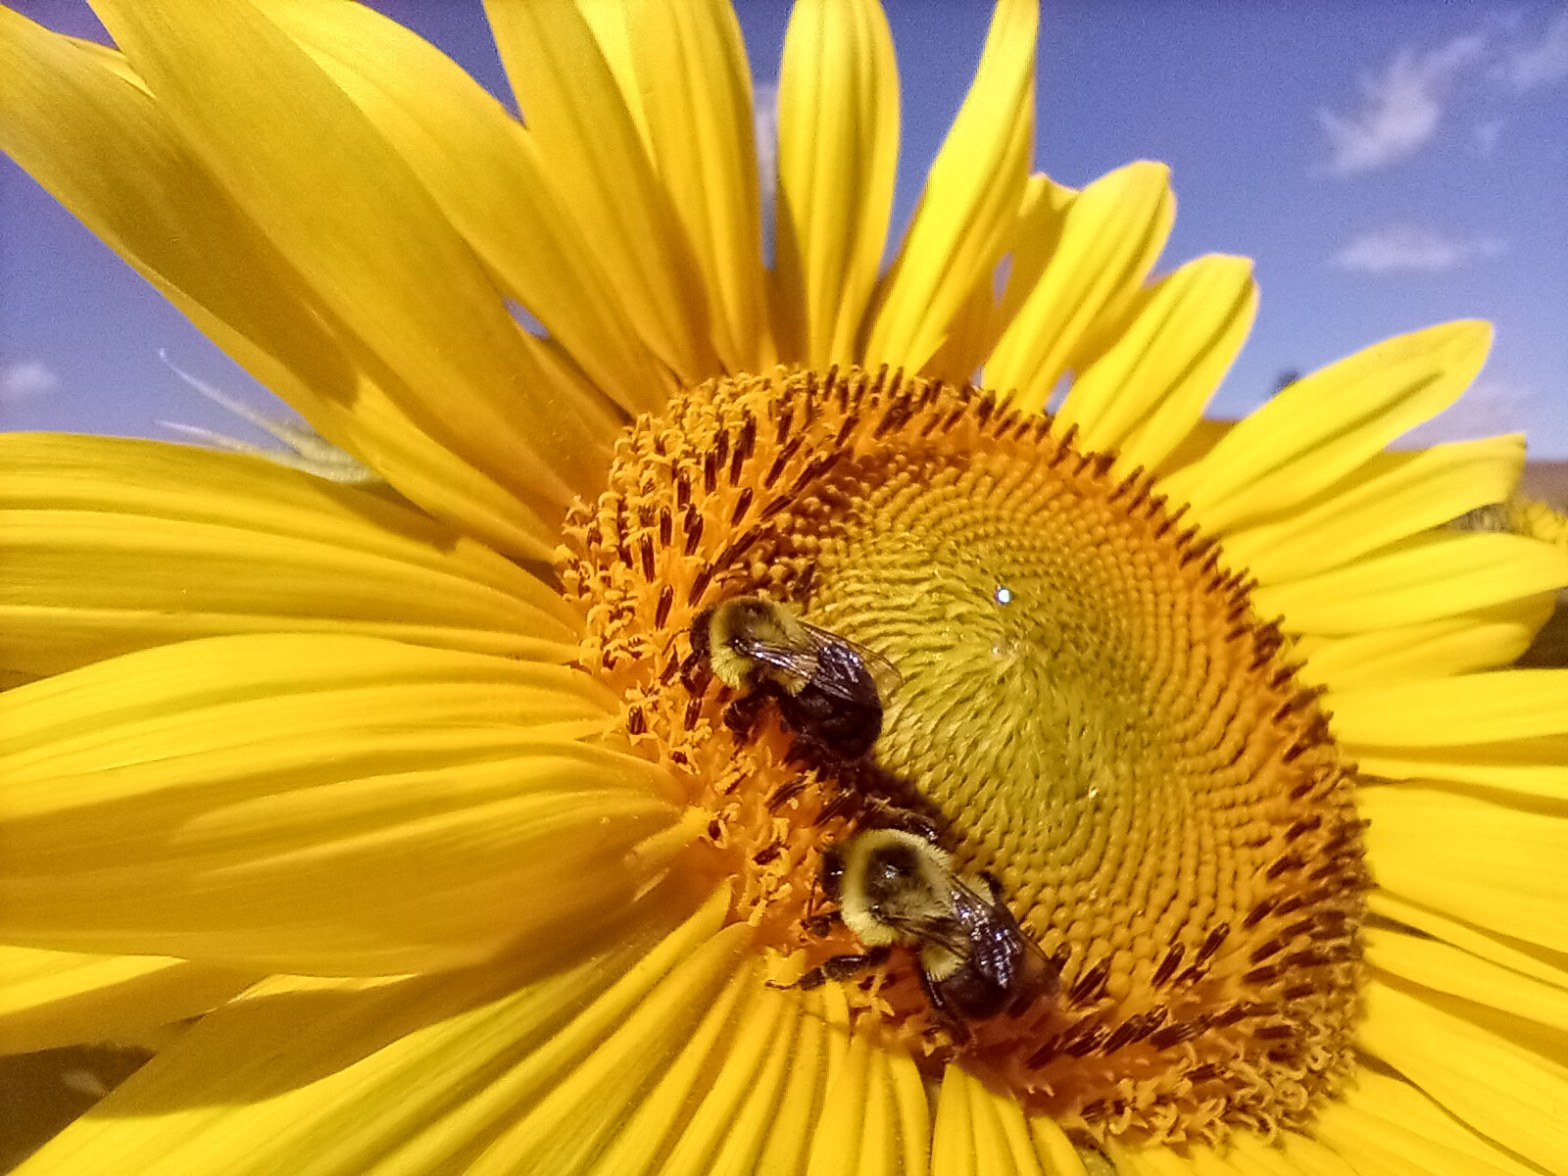 Sunflower with two bees